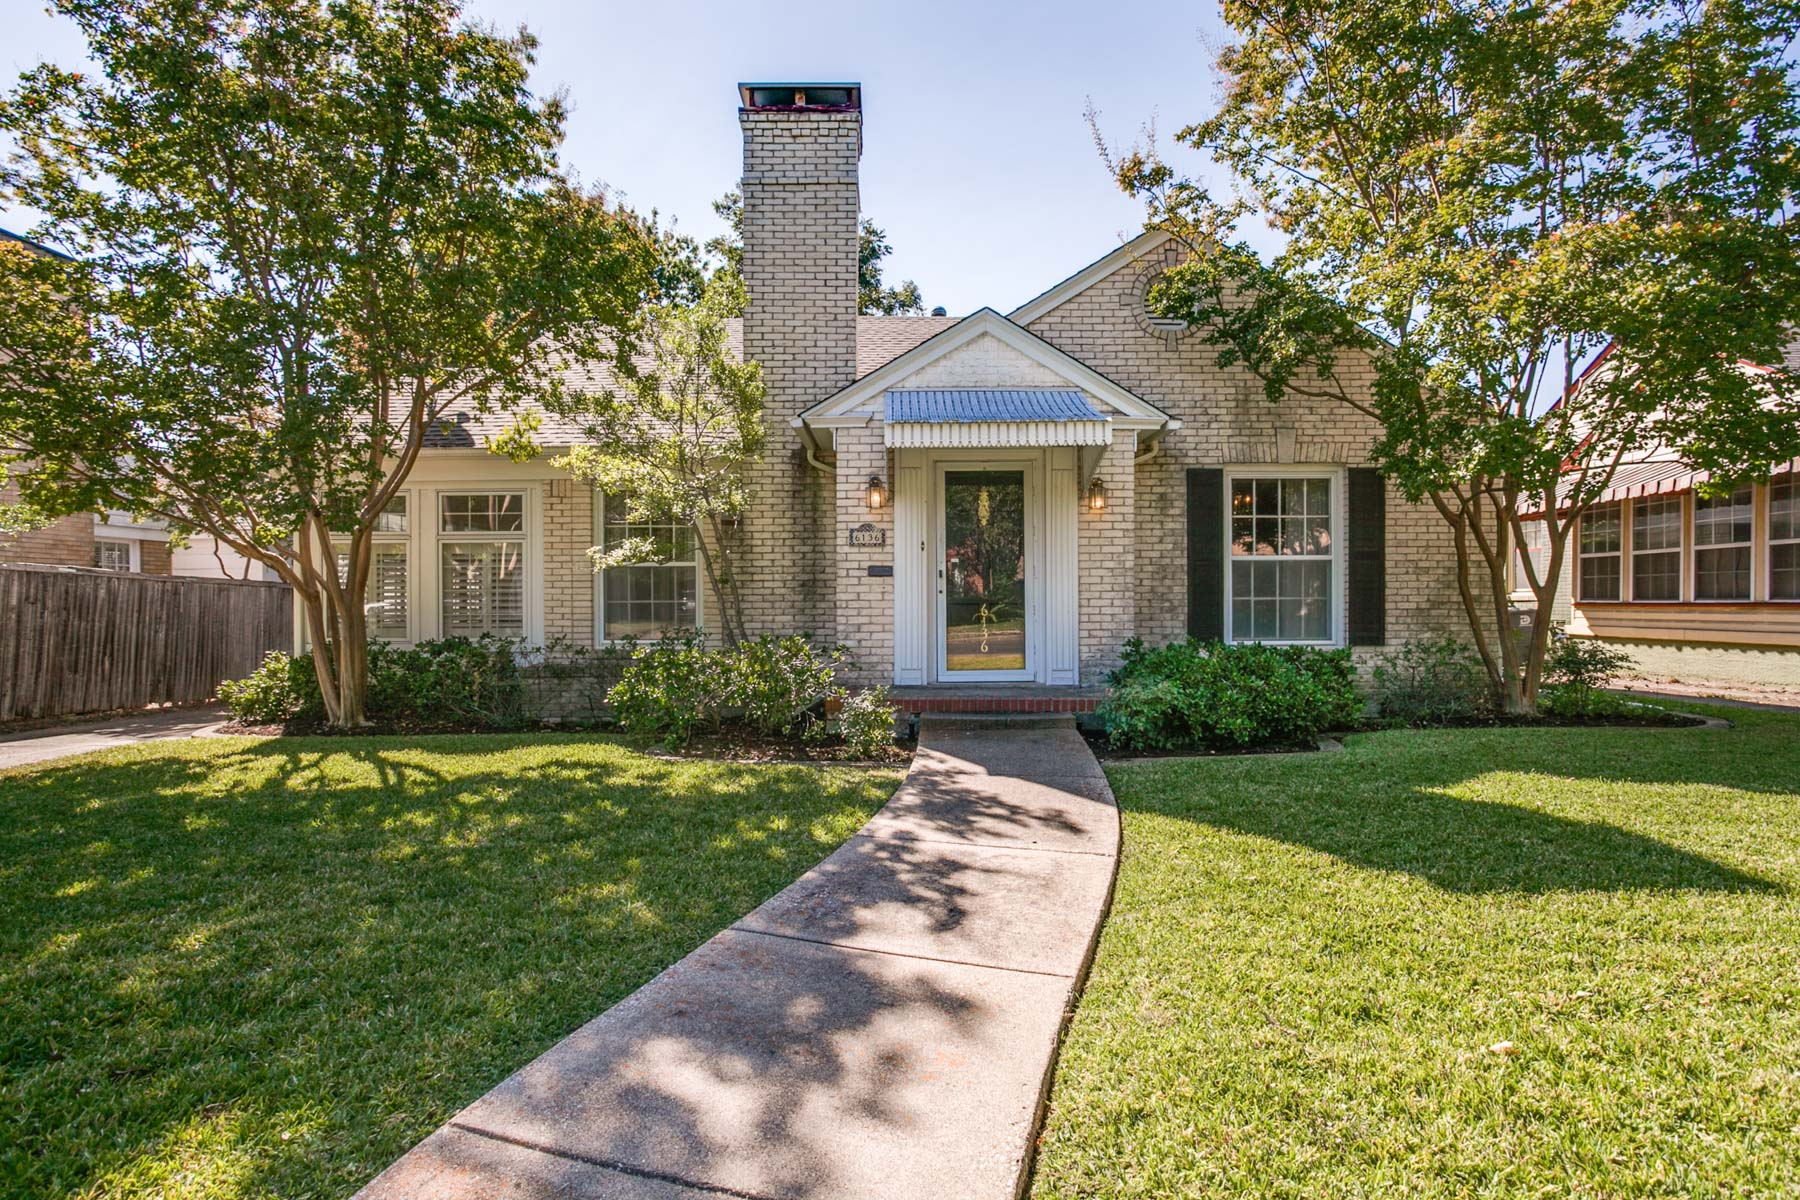 Single Family Home for Sale at Charming Tudor Bungalow 6136 Kenwood Avenue Dallas, Texas 75214 United States